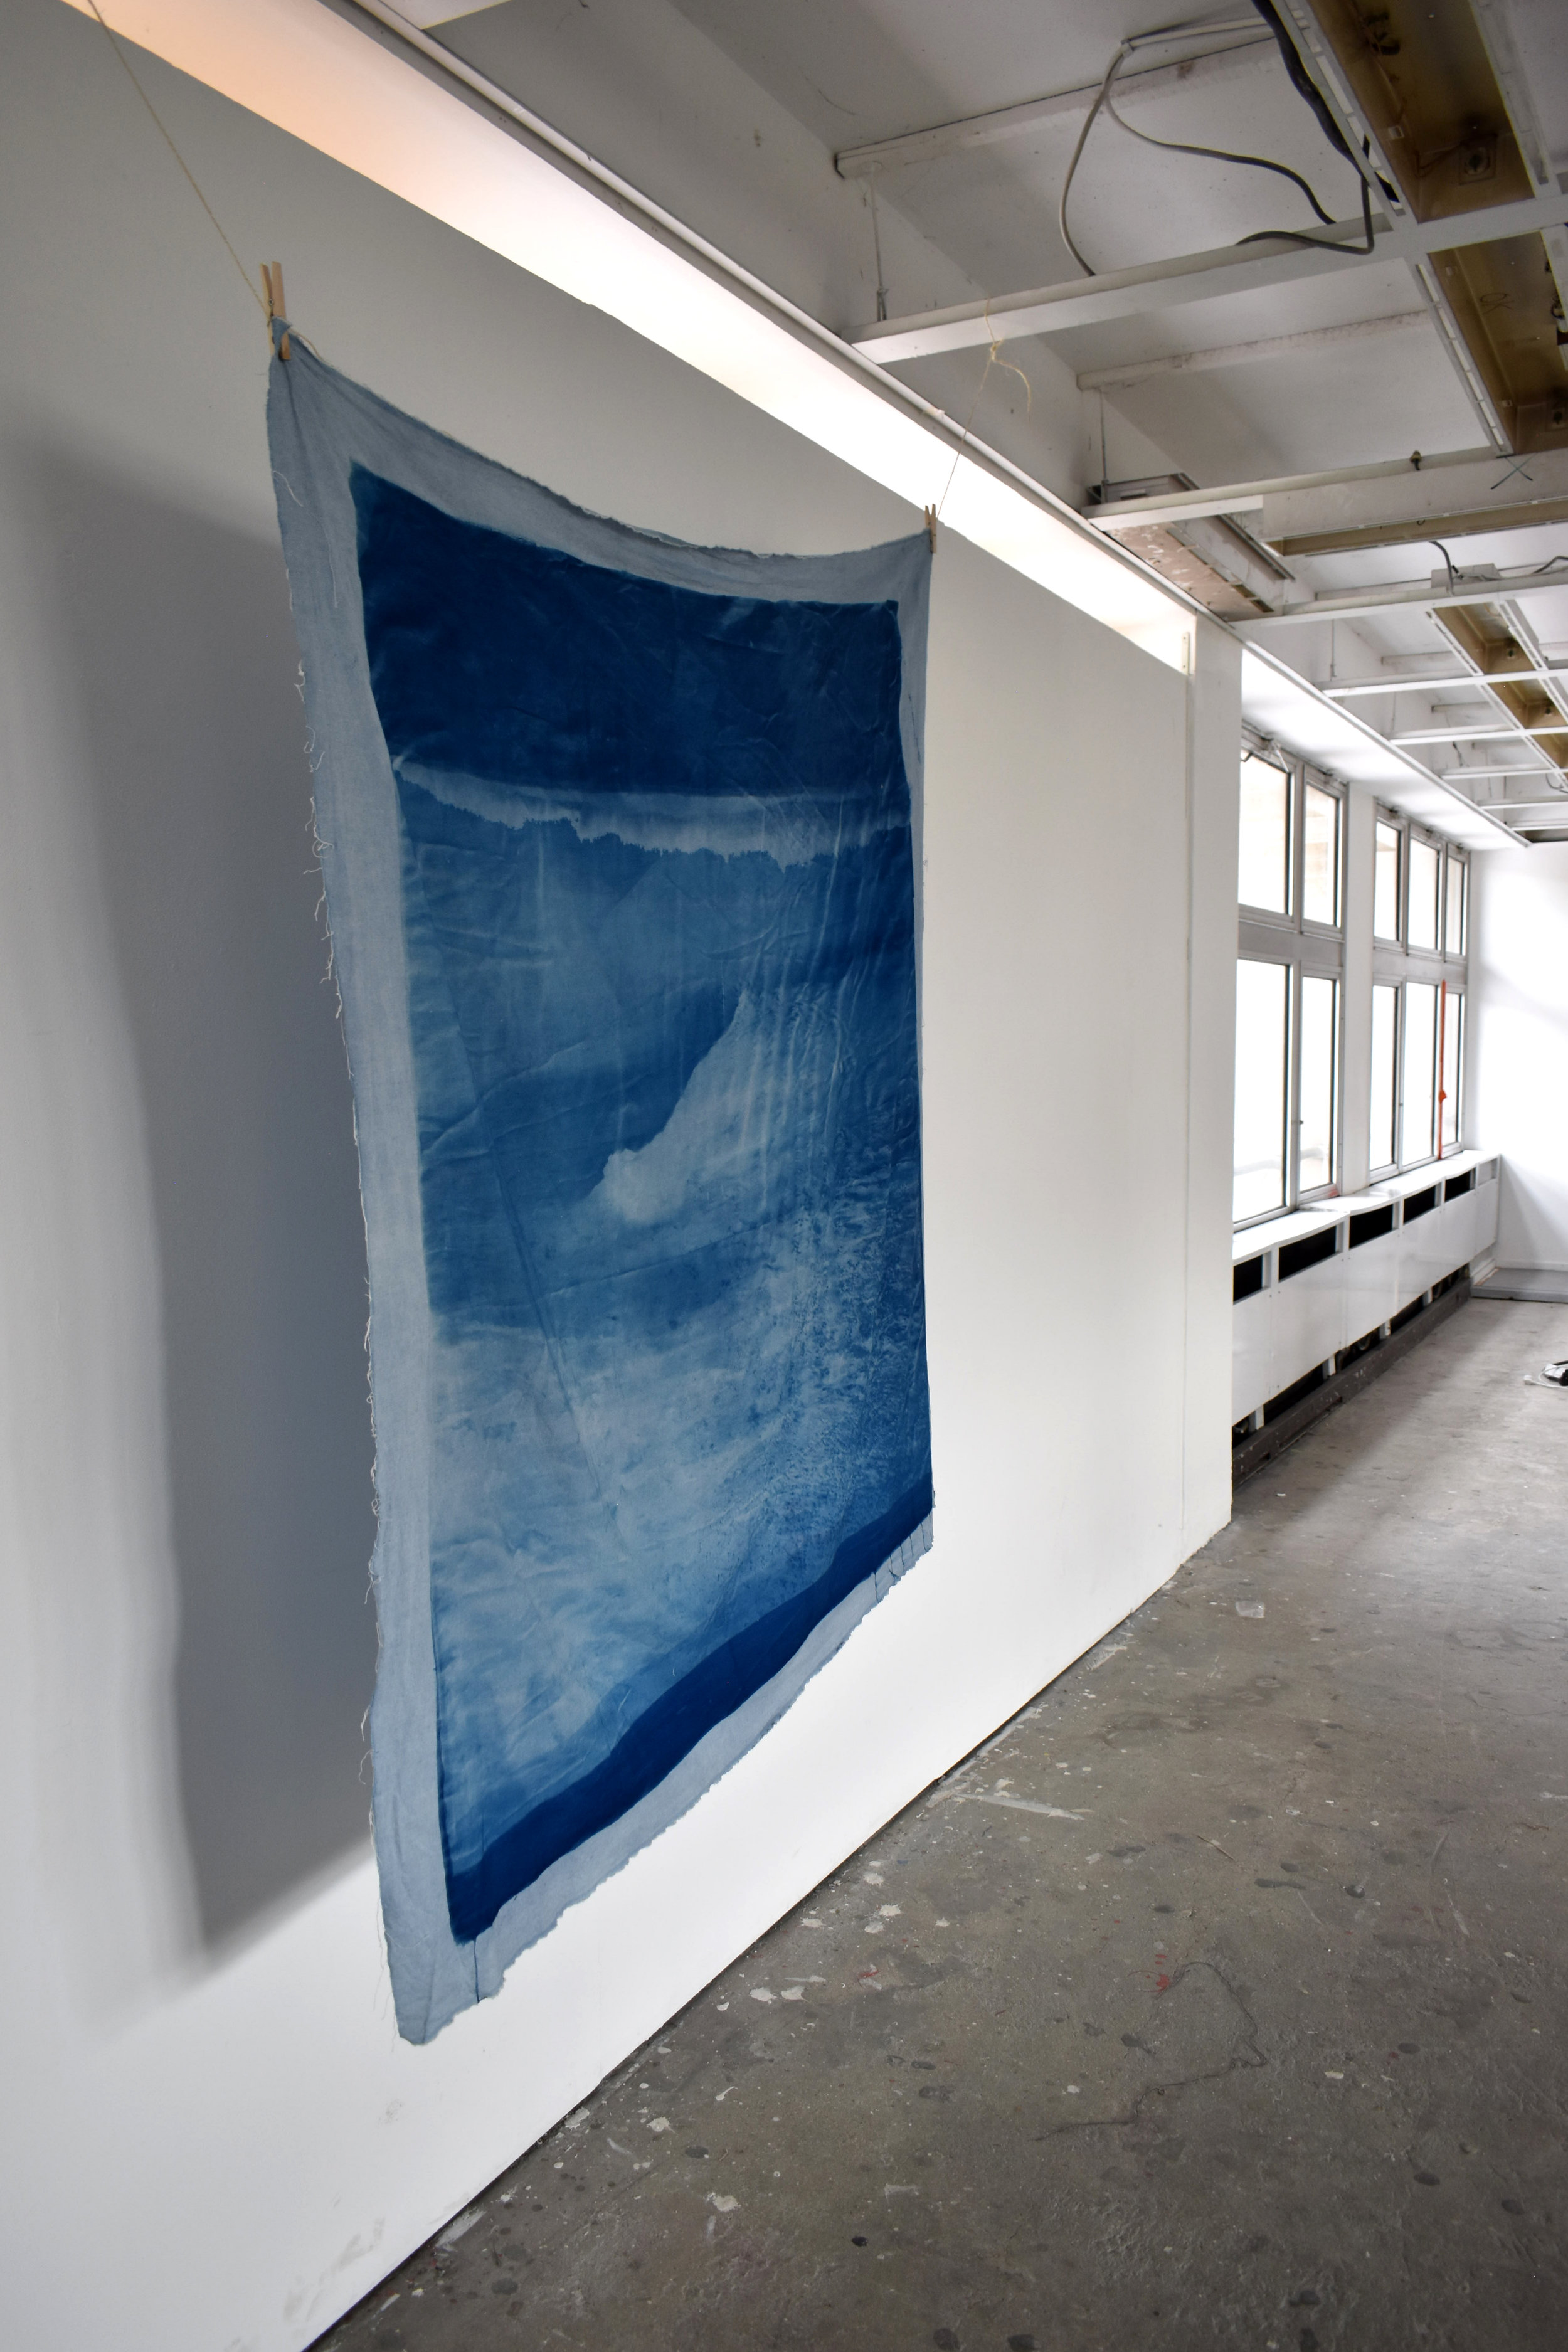 Over and Under (Whirlpool), No. 1,  2019., installation shot, Le 6b, Saint-Denis, France